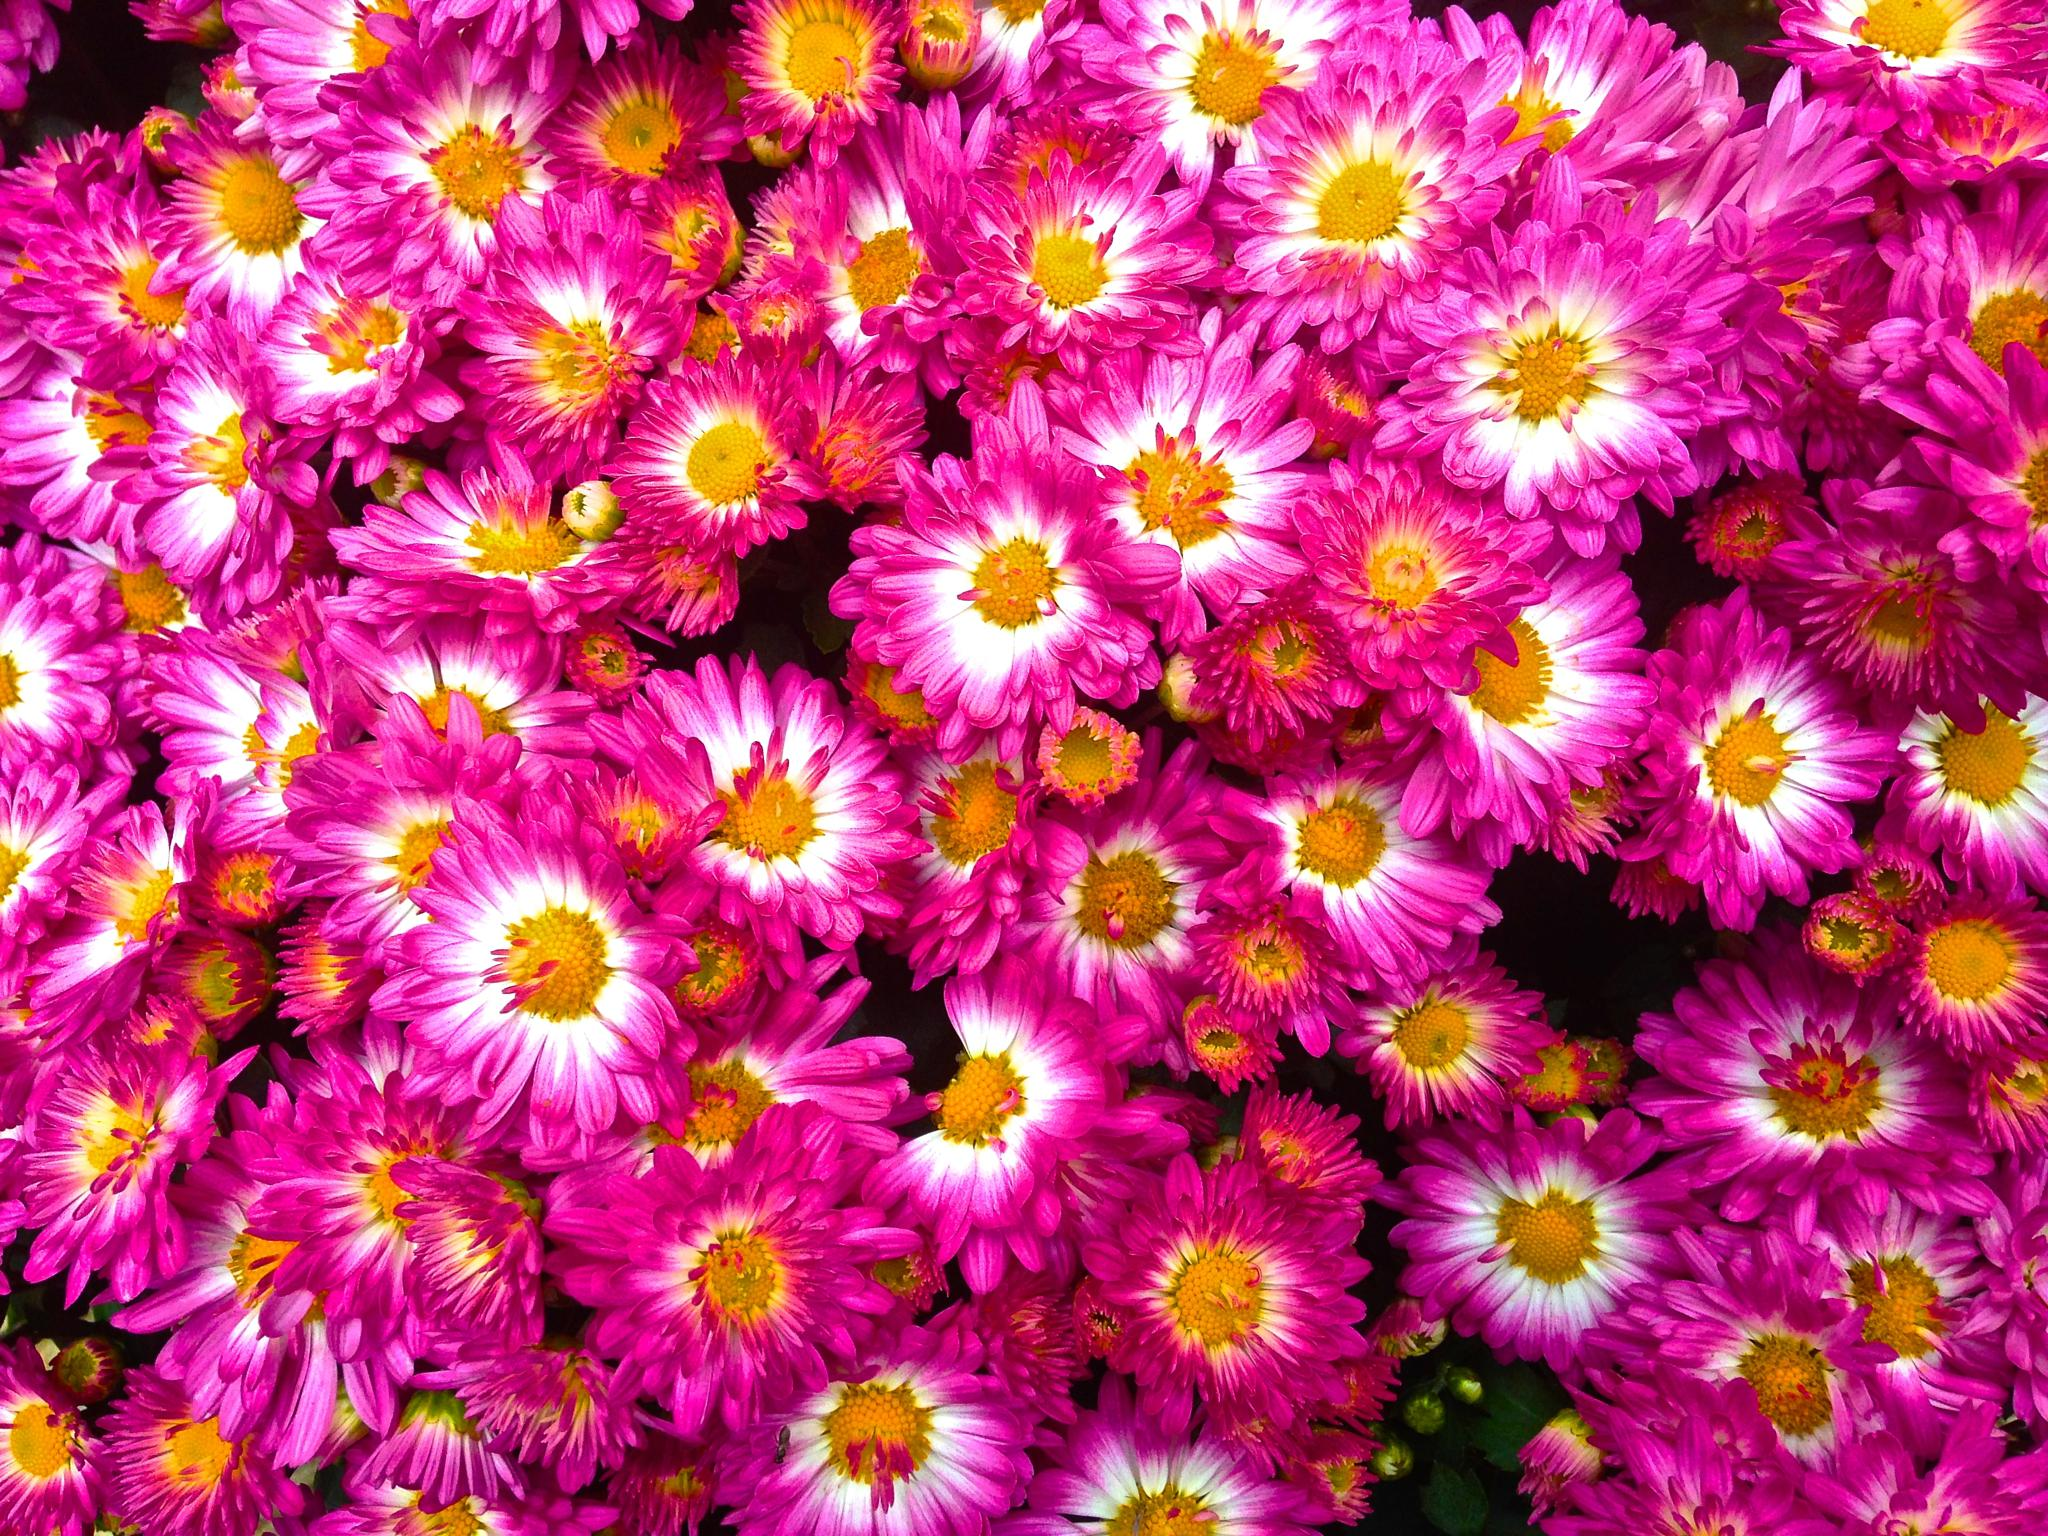 Autumn Mums by scausby1